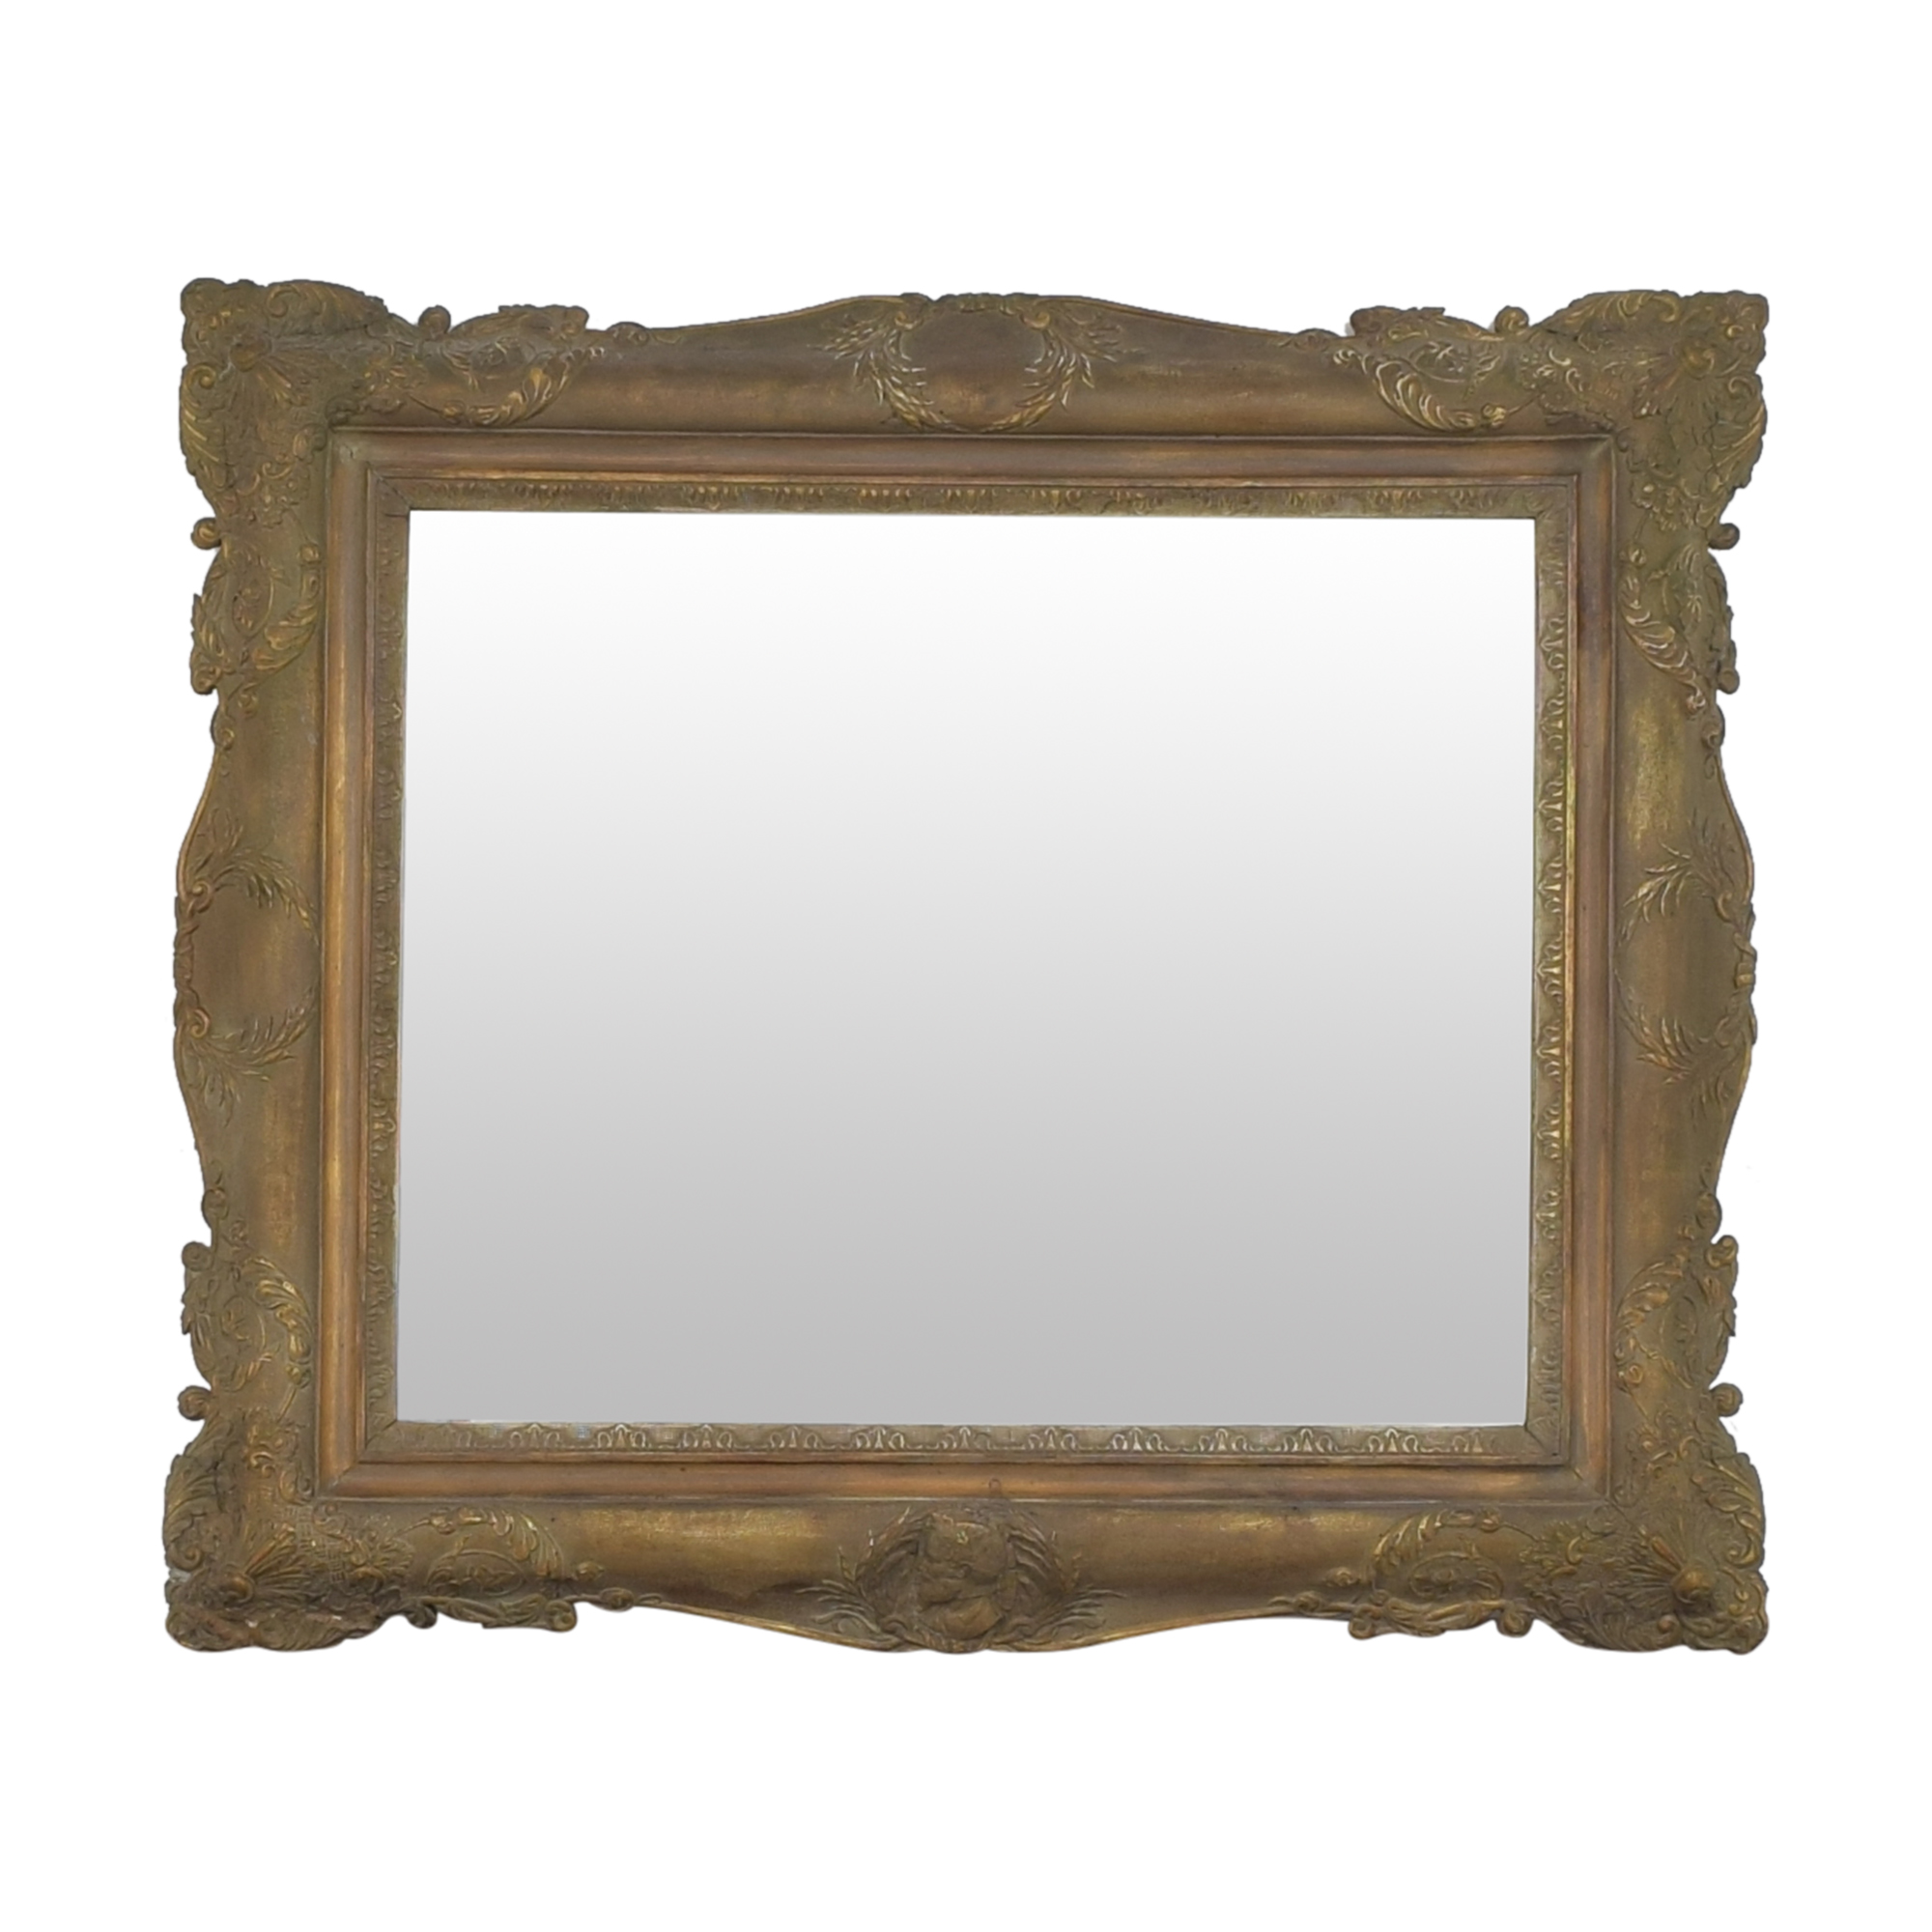 Antique Framed Wall Mirror Mirrors